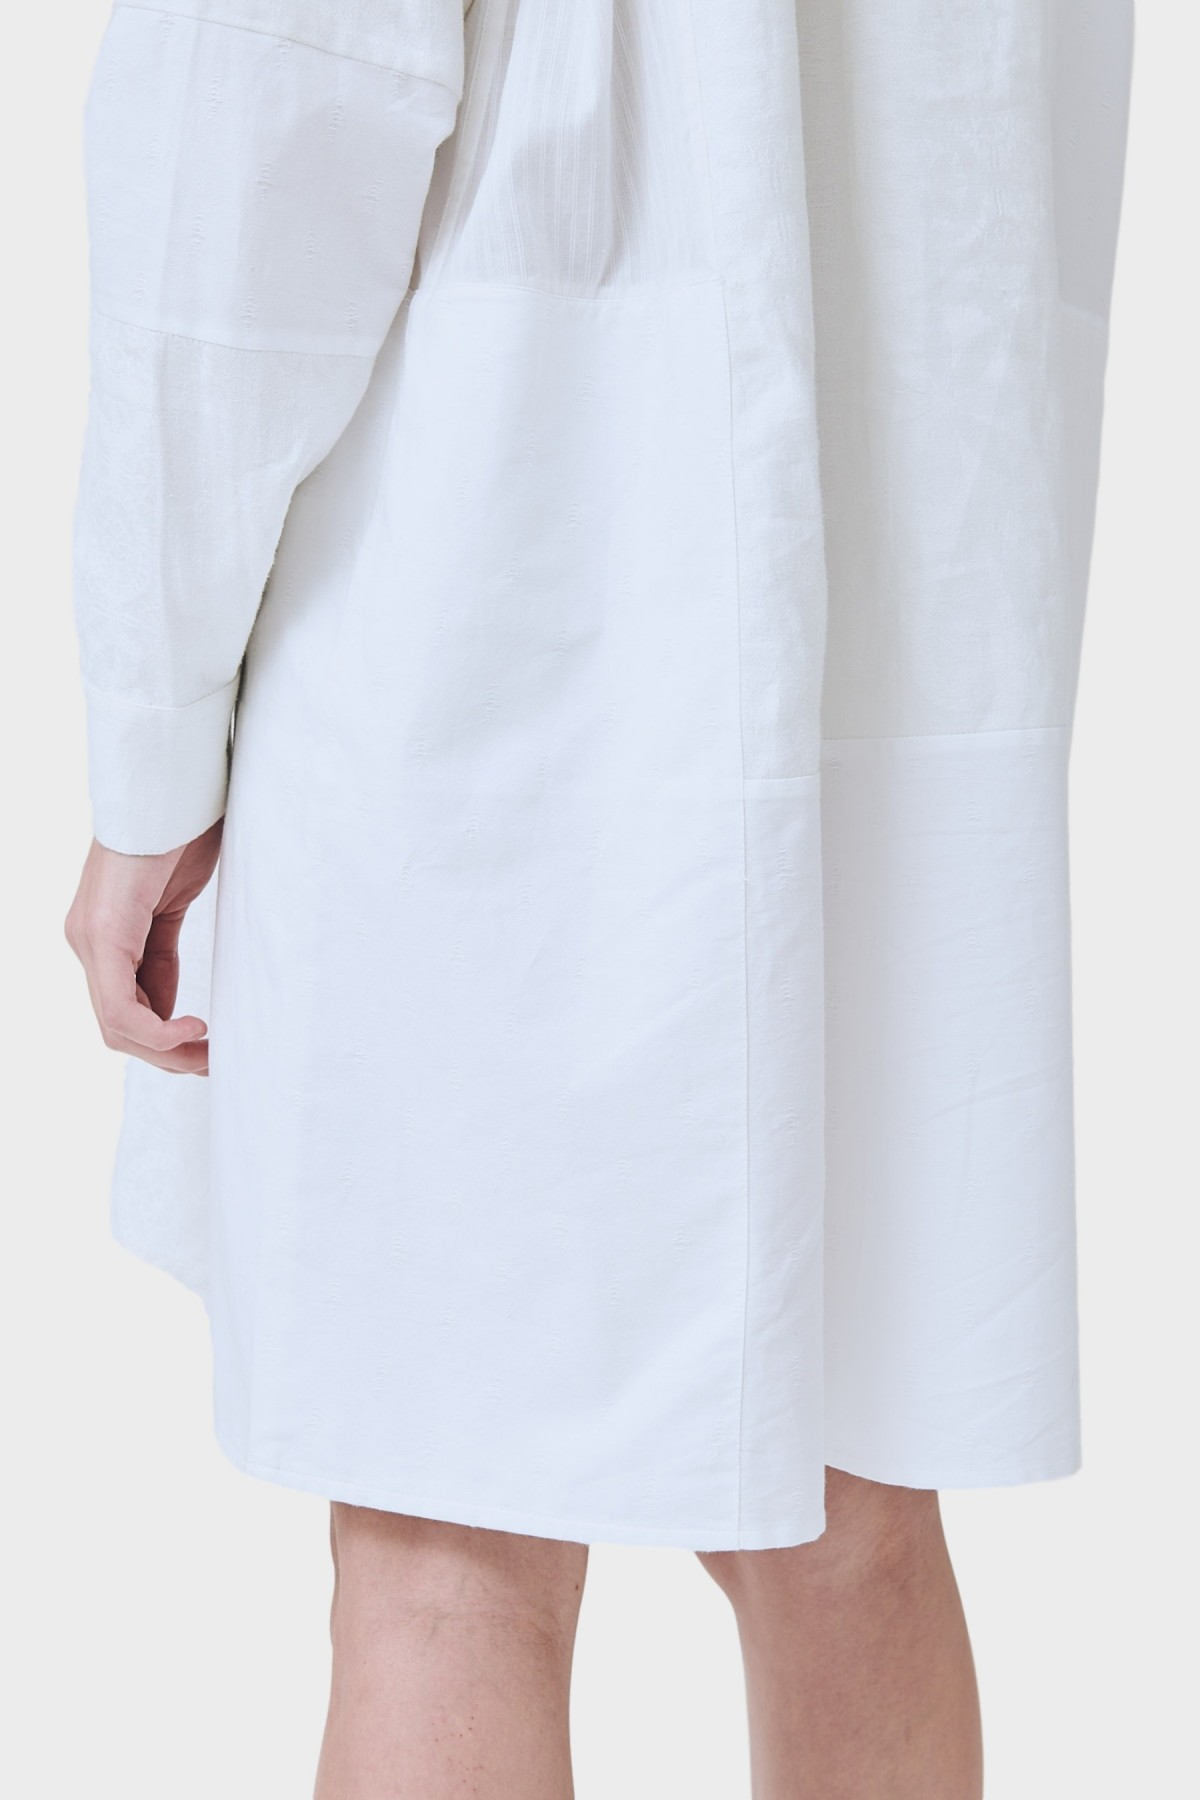 Soulland Elisa Over & Out Dress in White